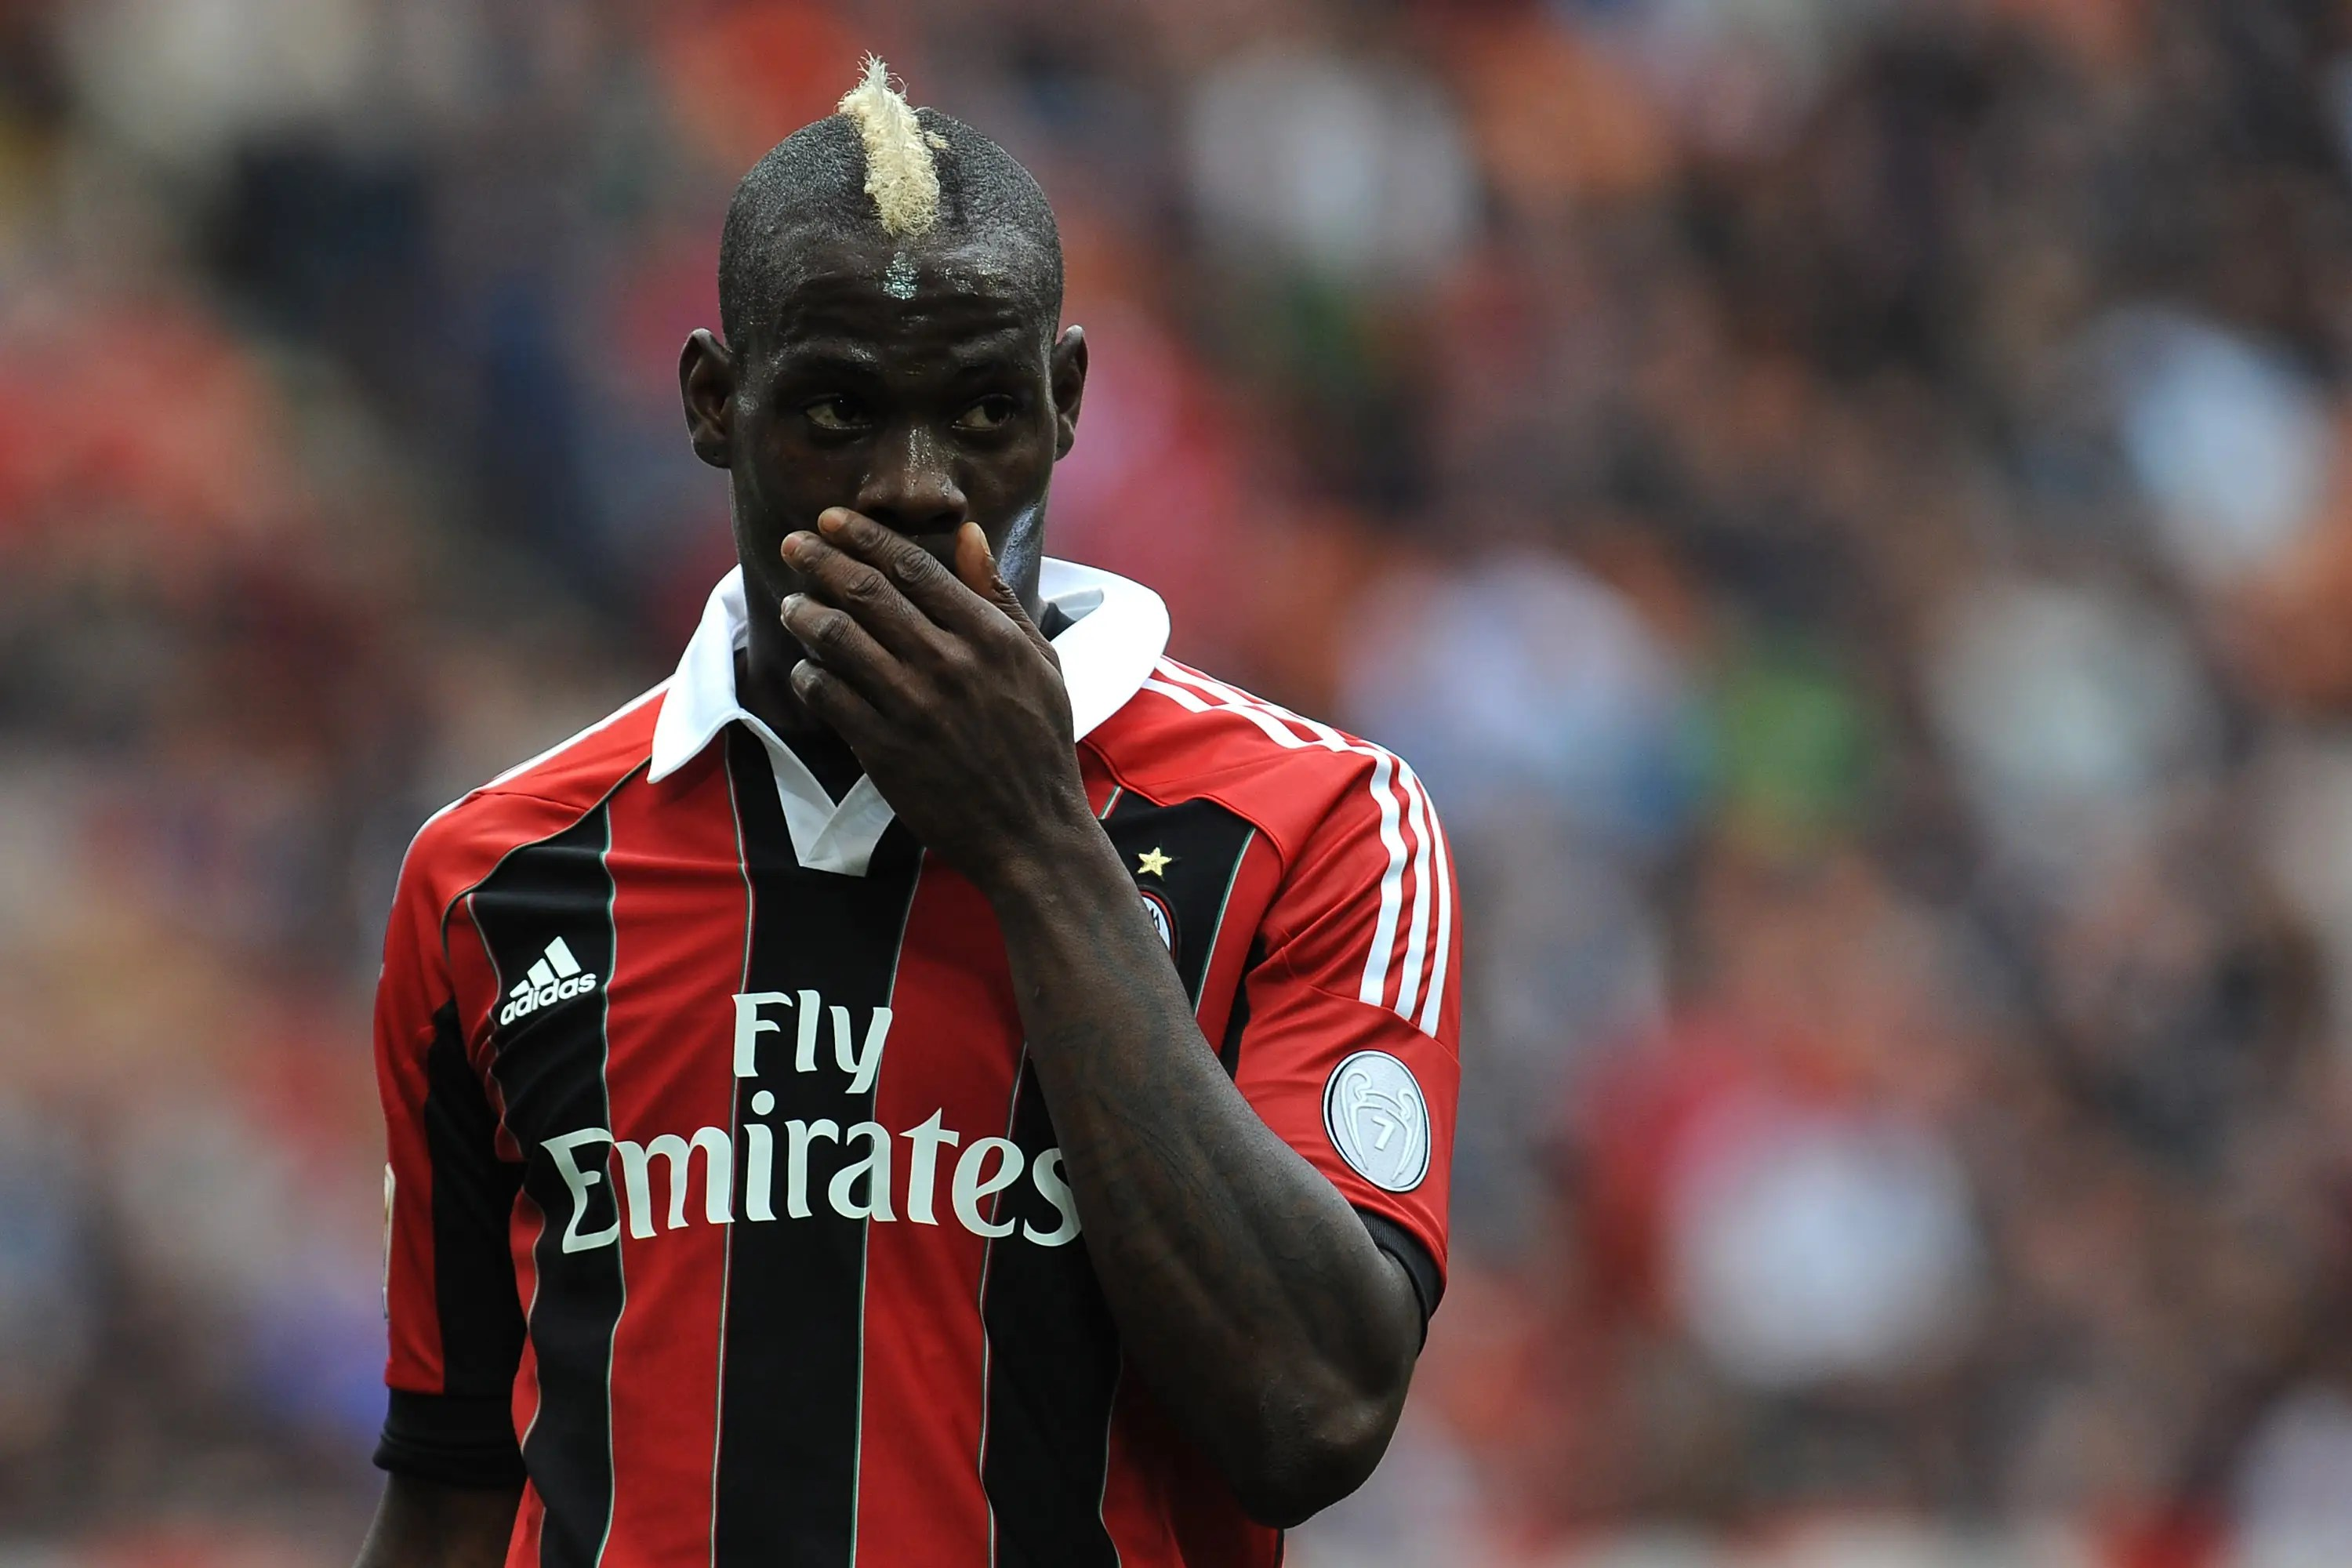 He makes ~$7 million per year in salary at AC Milan.